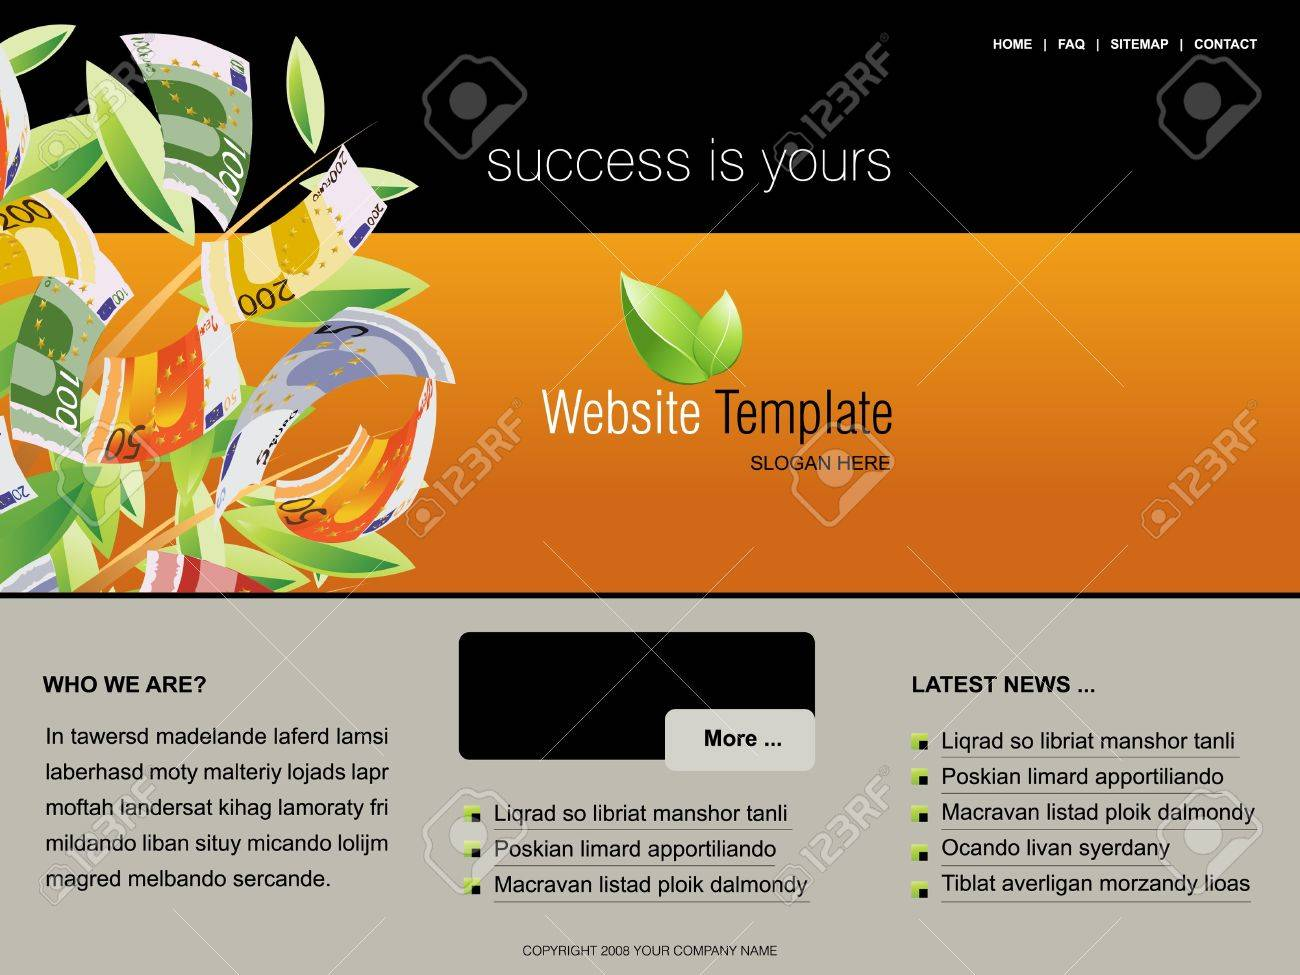 Website Template, easy to use in adobe Photoshop, Flash or Illustrator to export it to HTML format, just edit or replace text and add your sub pages. Stock Photo - 8047661